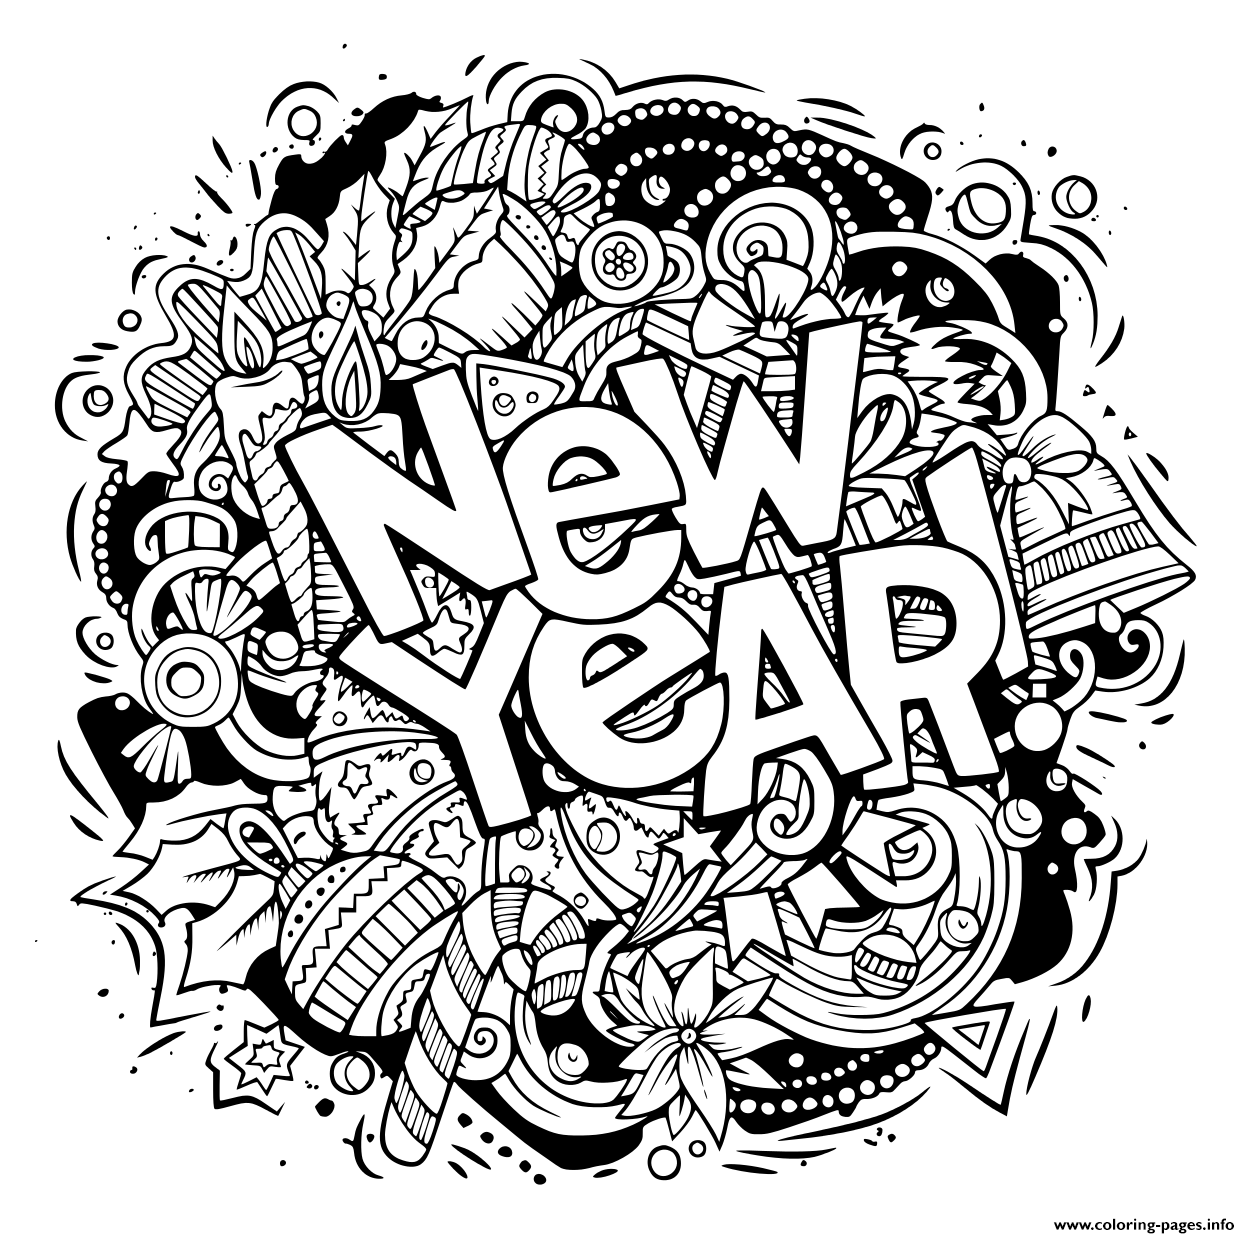 New Year Doodles Objects And Elements coloring pages